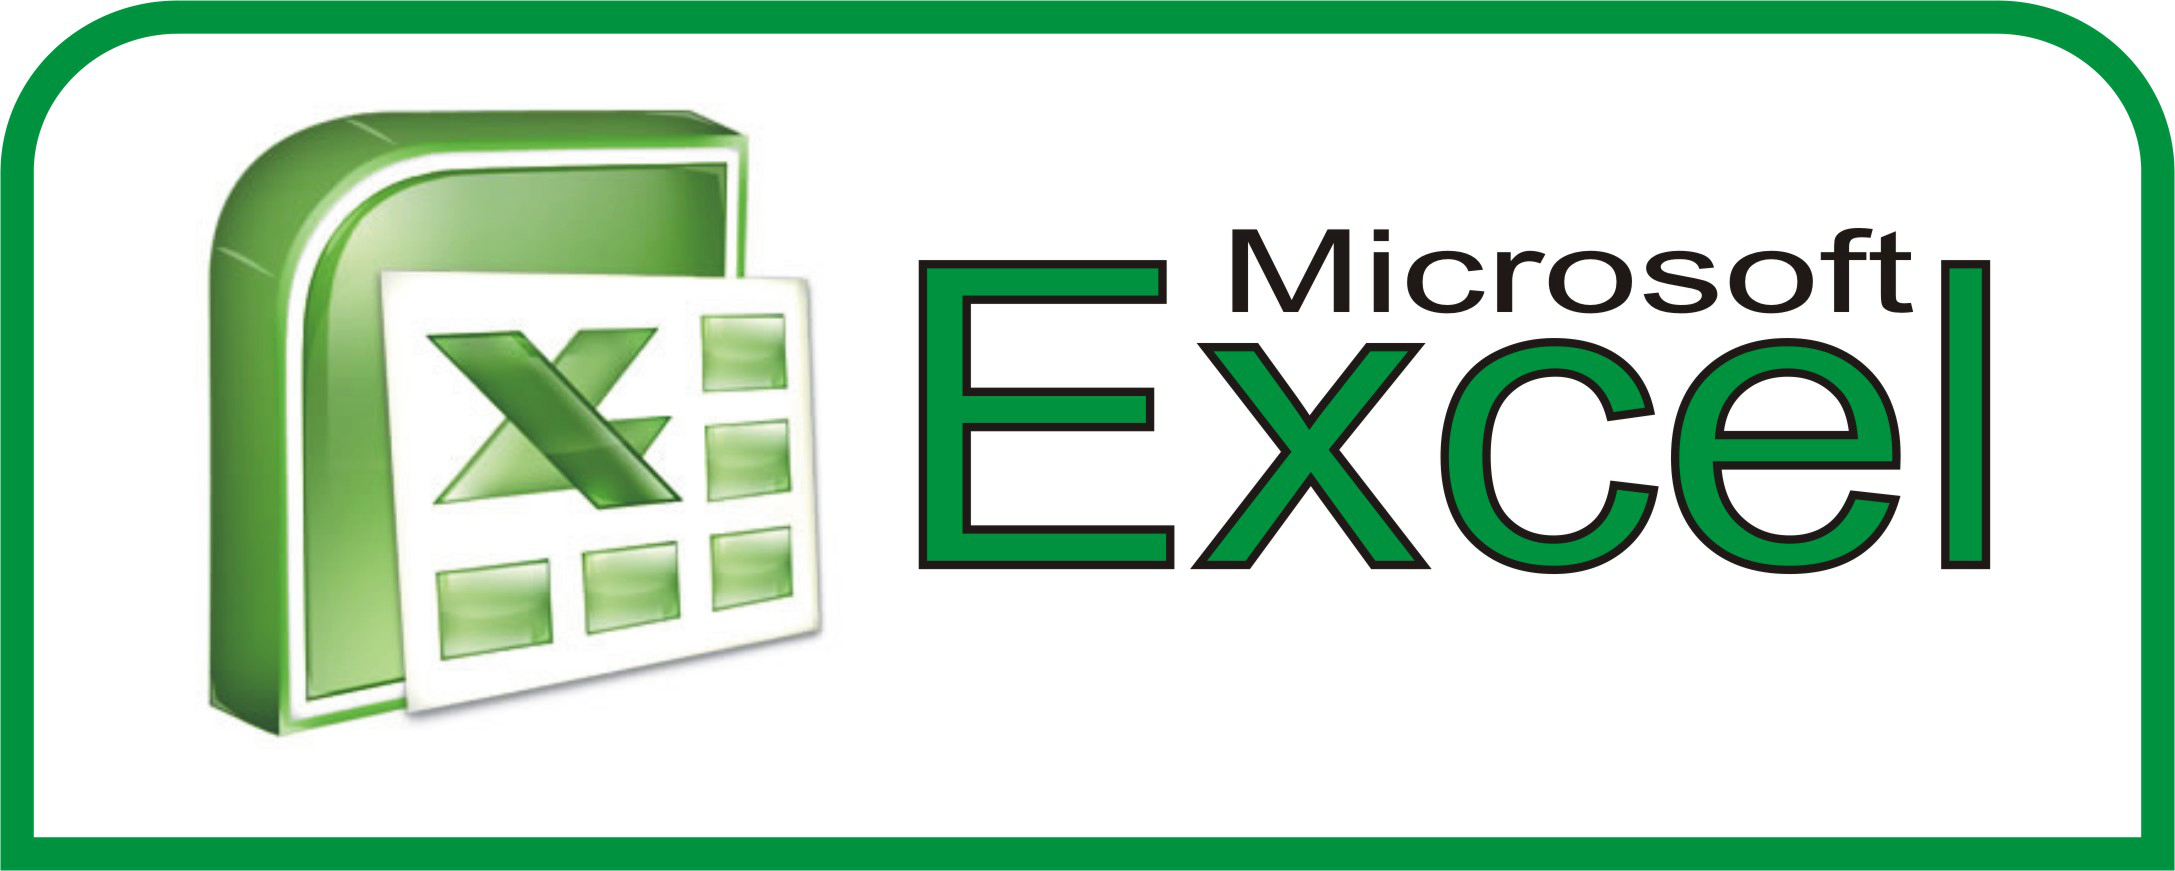 Ediblewildsus  Seductive  Excel Shortcuts You Probably Didnt Know About  Techdissected With Entrancing Free Word Excel Besides Excel Add Numbers In Column Furthermore D Graphs In Excel With Astonishing Excel Freezing Panes Also Excel Formula For Column In Addition Excel Bank And Product Formula Excel As Well As Order Of Operations Excel Additionally Excel Html From Techdissectedcom With Ediblewildsus  Entrancing  Excel Shortcuts You Probably Didnt Know About  Techdissected With Astonishing Free Word Excel Besides Excel Add Numbers In Column Furthermore D Graphs In Excel And Seductive Excel Freezing Panes Also Excel Formula For Column In Addition Excel Bank From Techdissectedcom